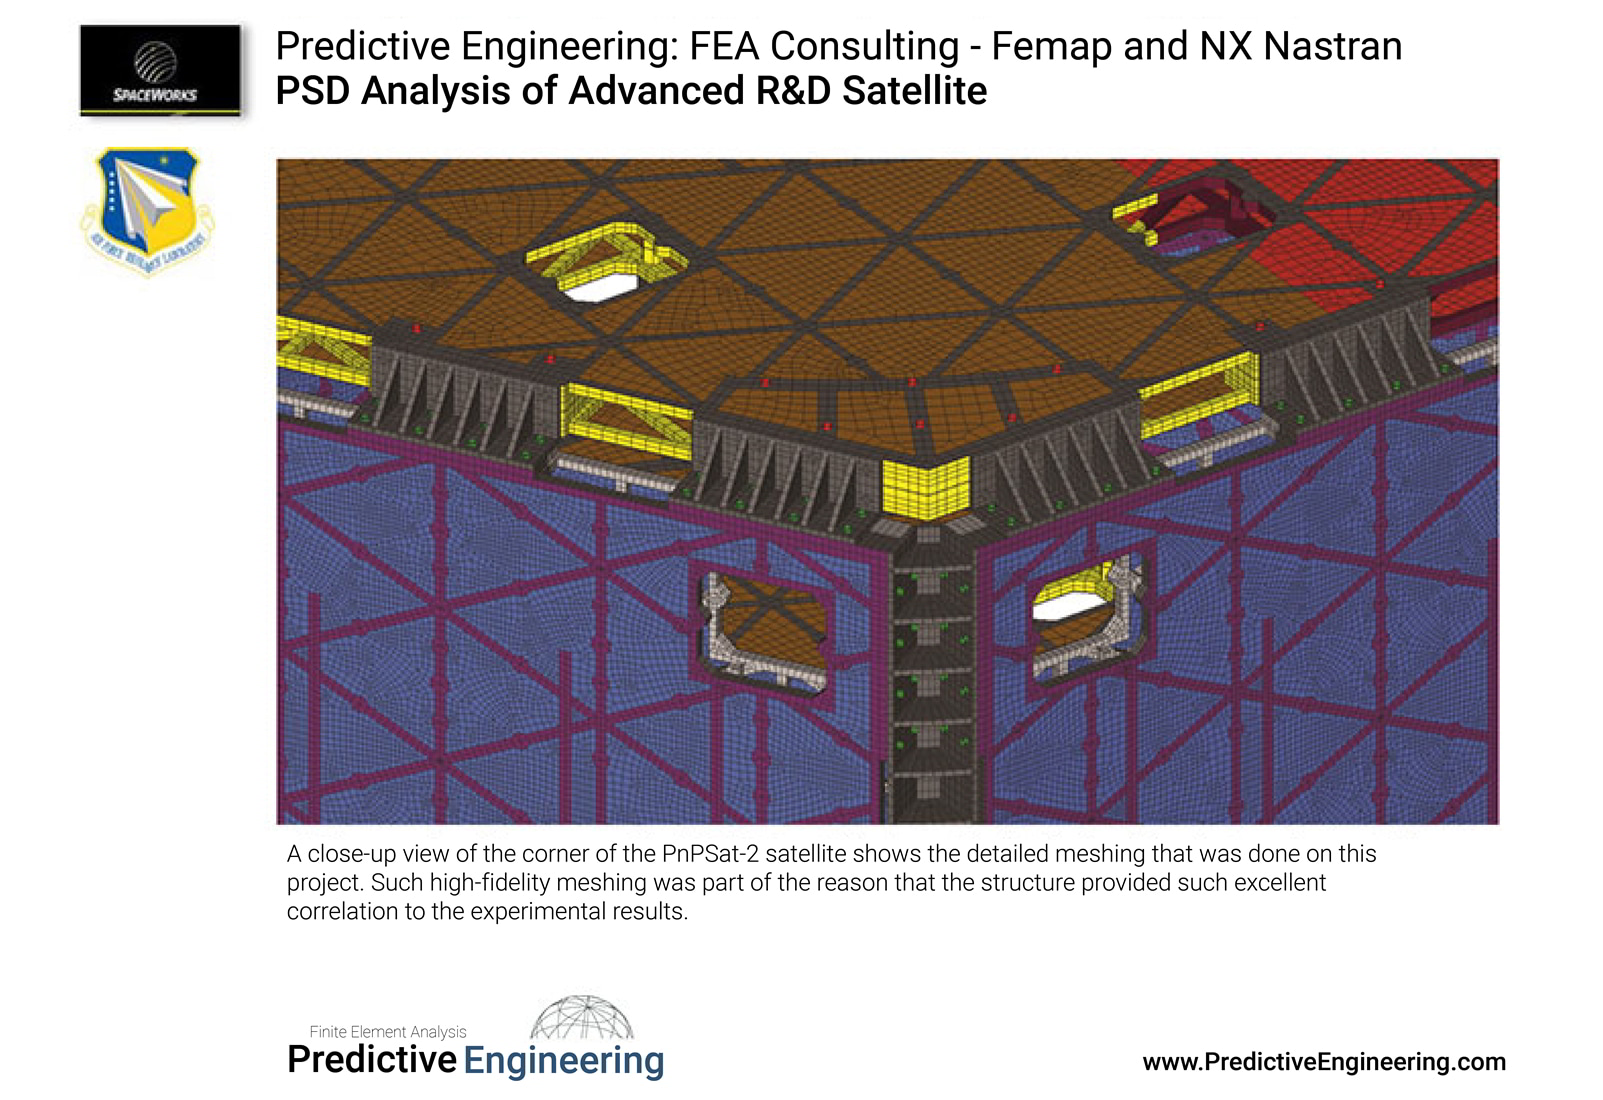 A close-up view of the corner of the PnPSat-2 satellite shows the detailed meshing that was done on this project.  Predictive Engineering FEA Consulting Services